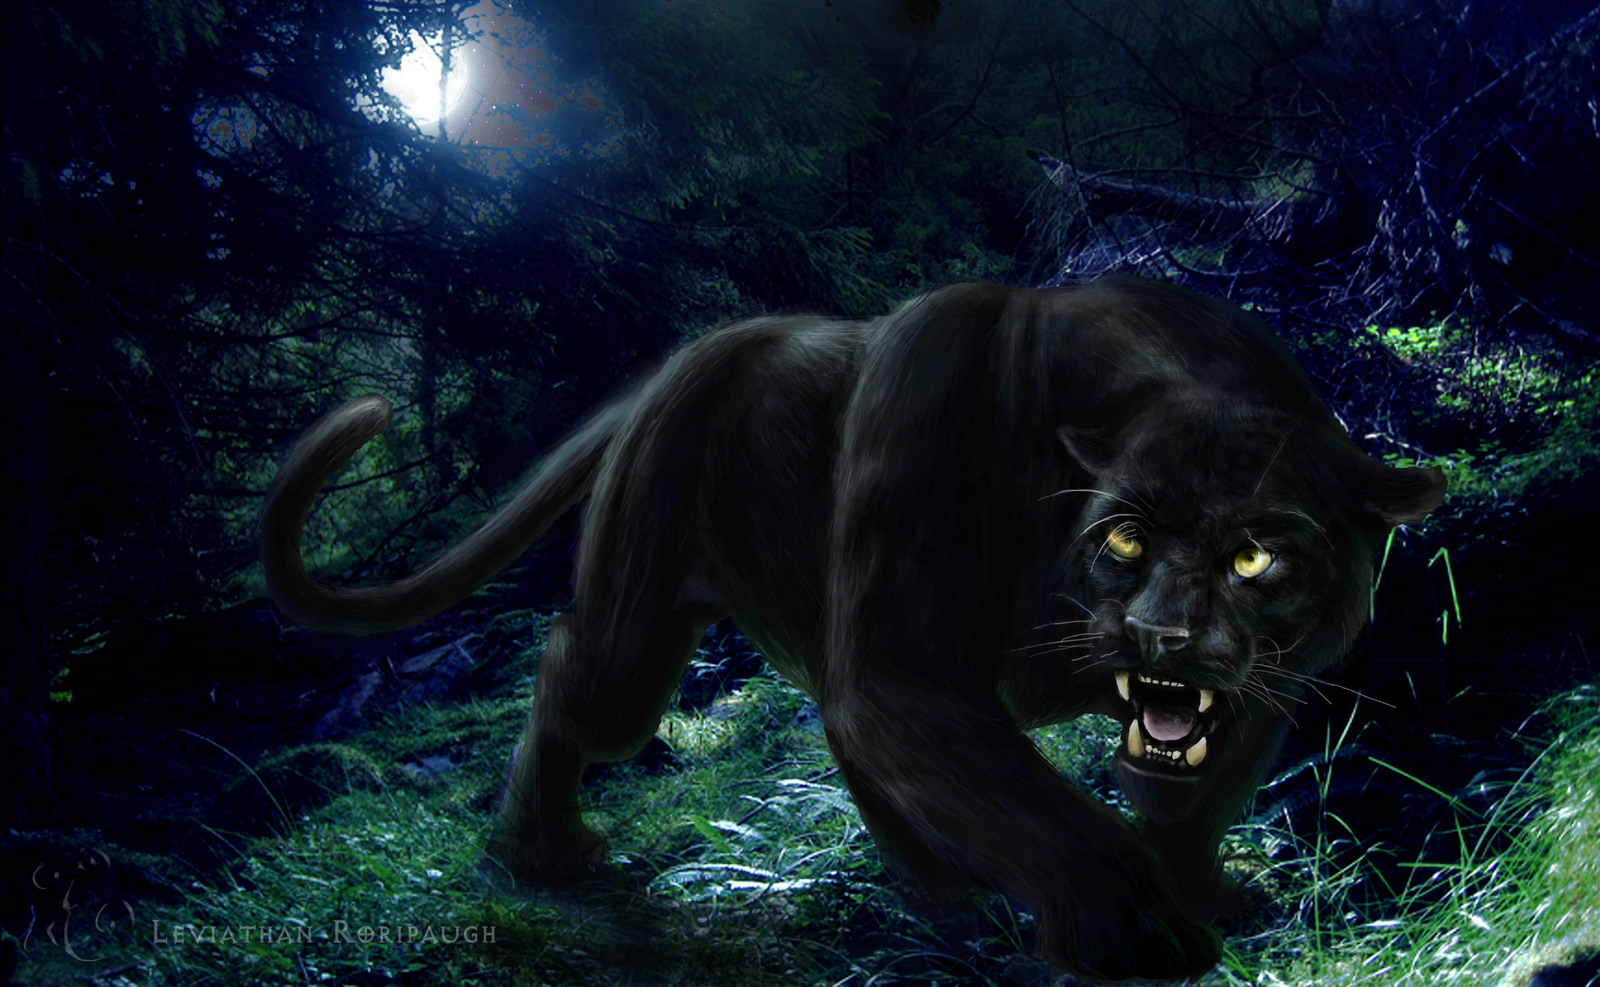 Animal Panthers Wallpaper Images amp Pictures   Becuo 1600x987